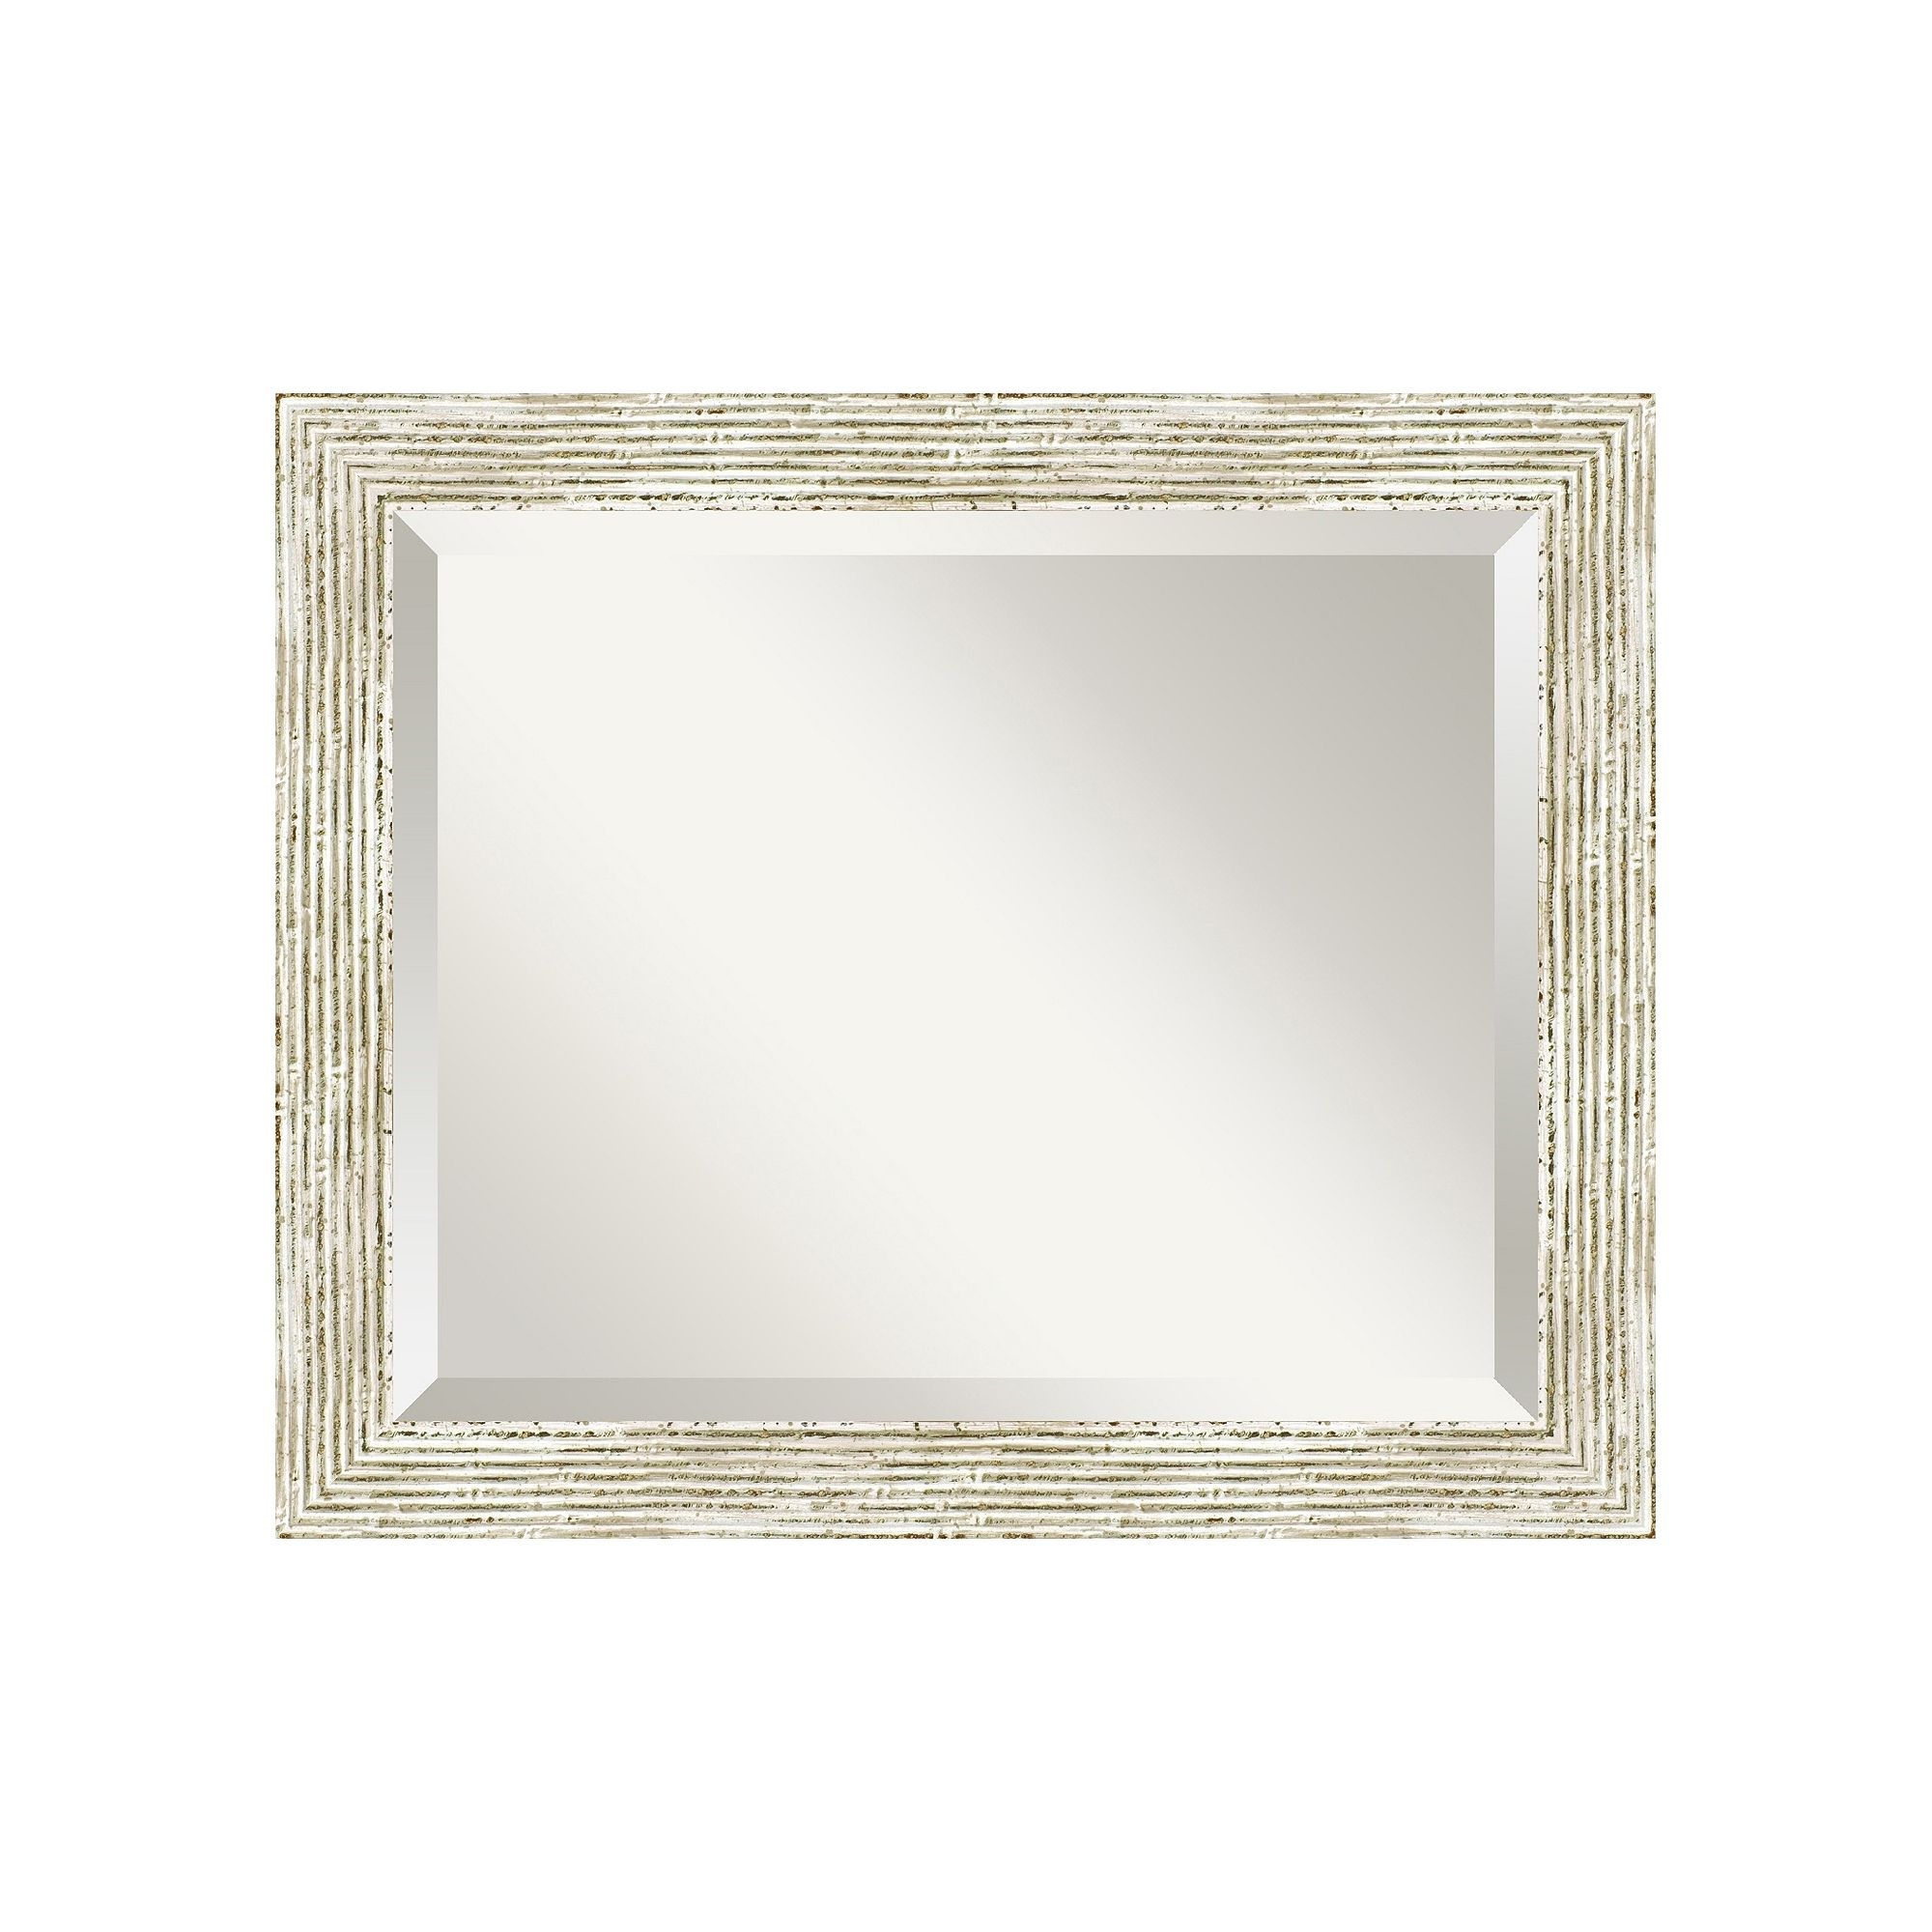 Amanti art cape cod whitewash distressed wood wall mirror white